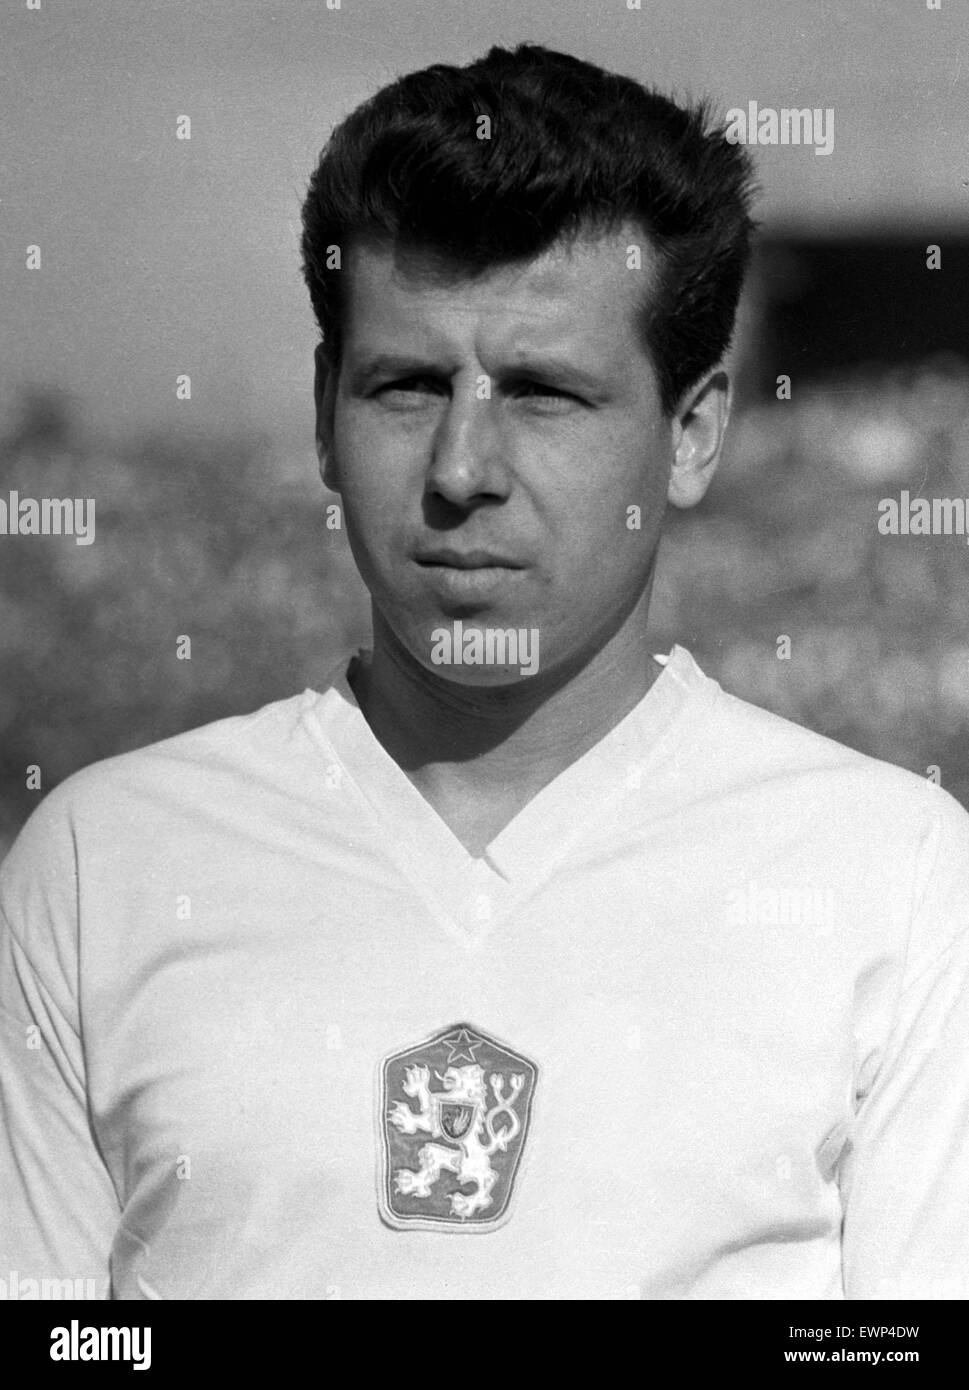 FILE PHOTO Soccer player Josef Masopust member of the silver